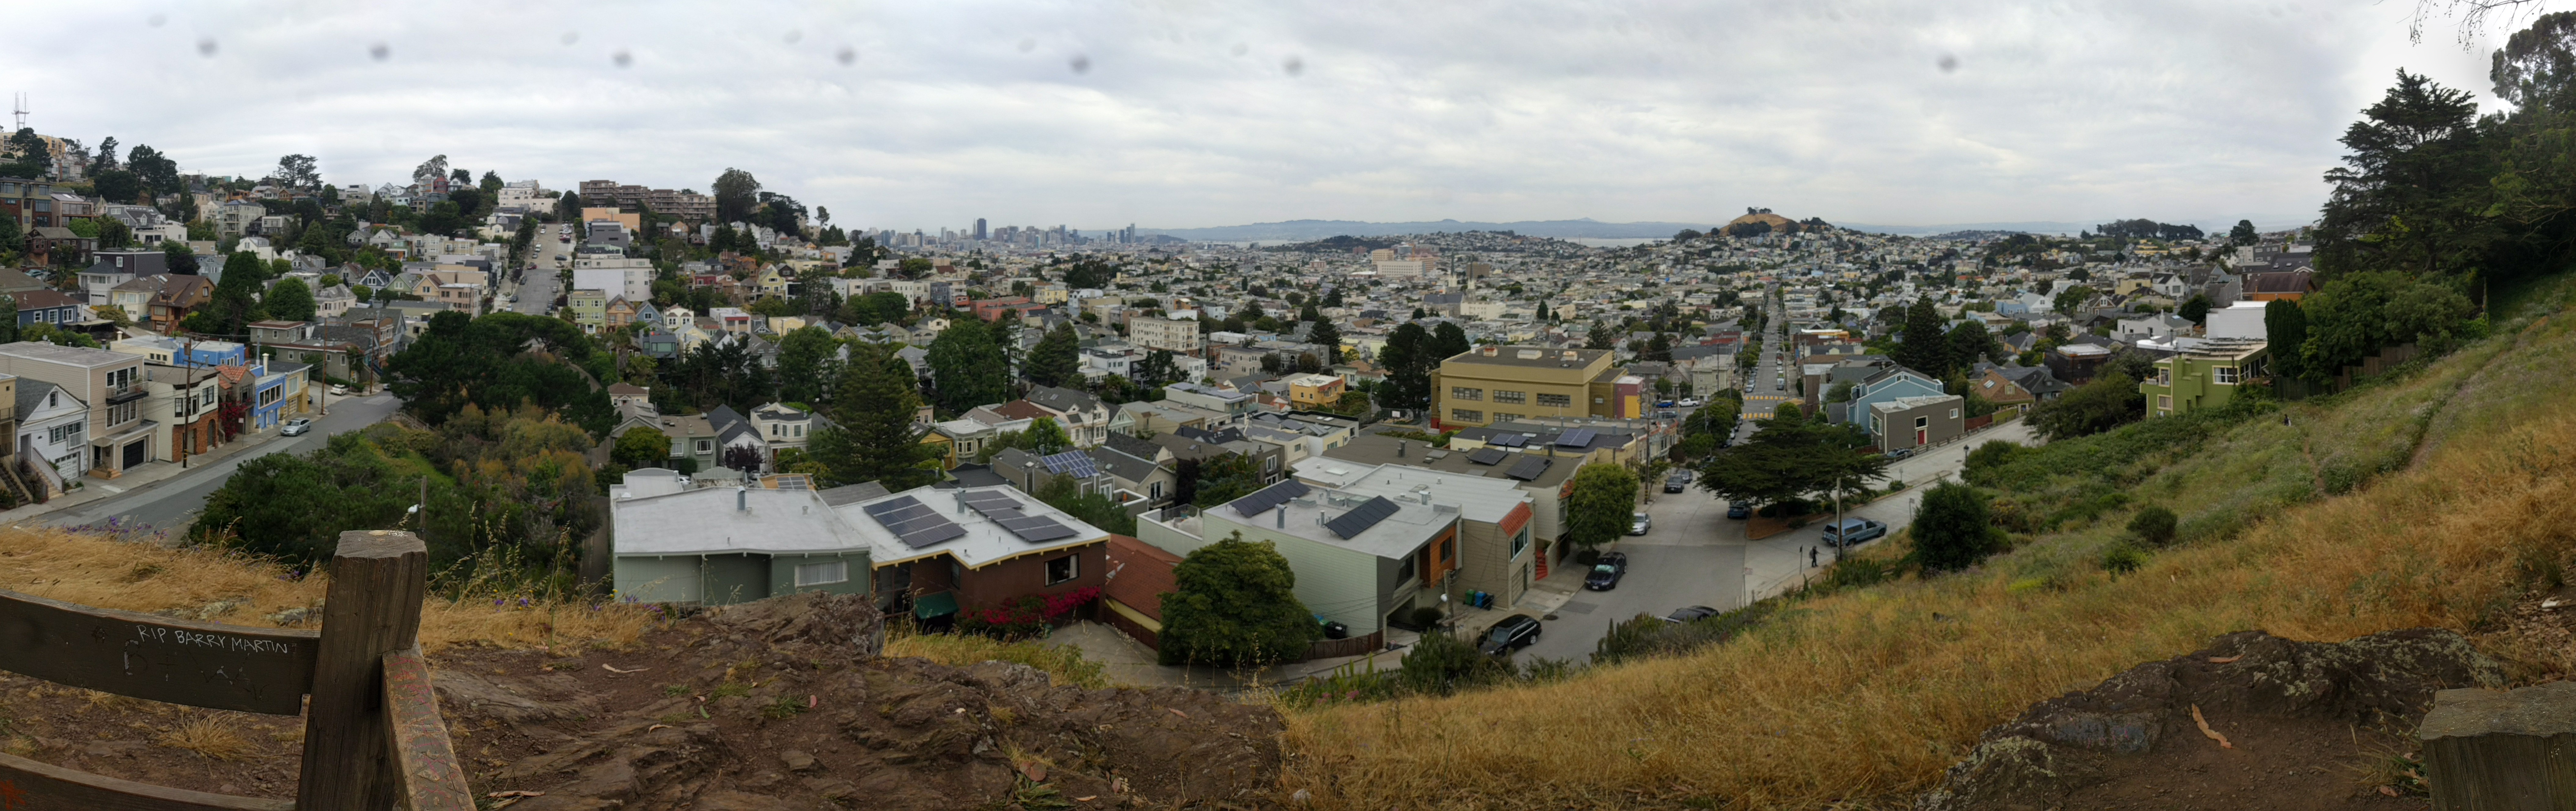 billy_goat_hill_pano_2